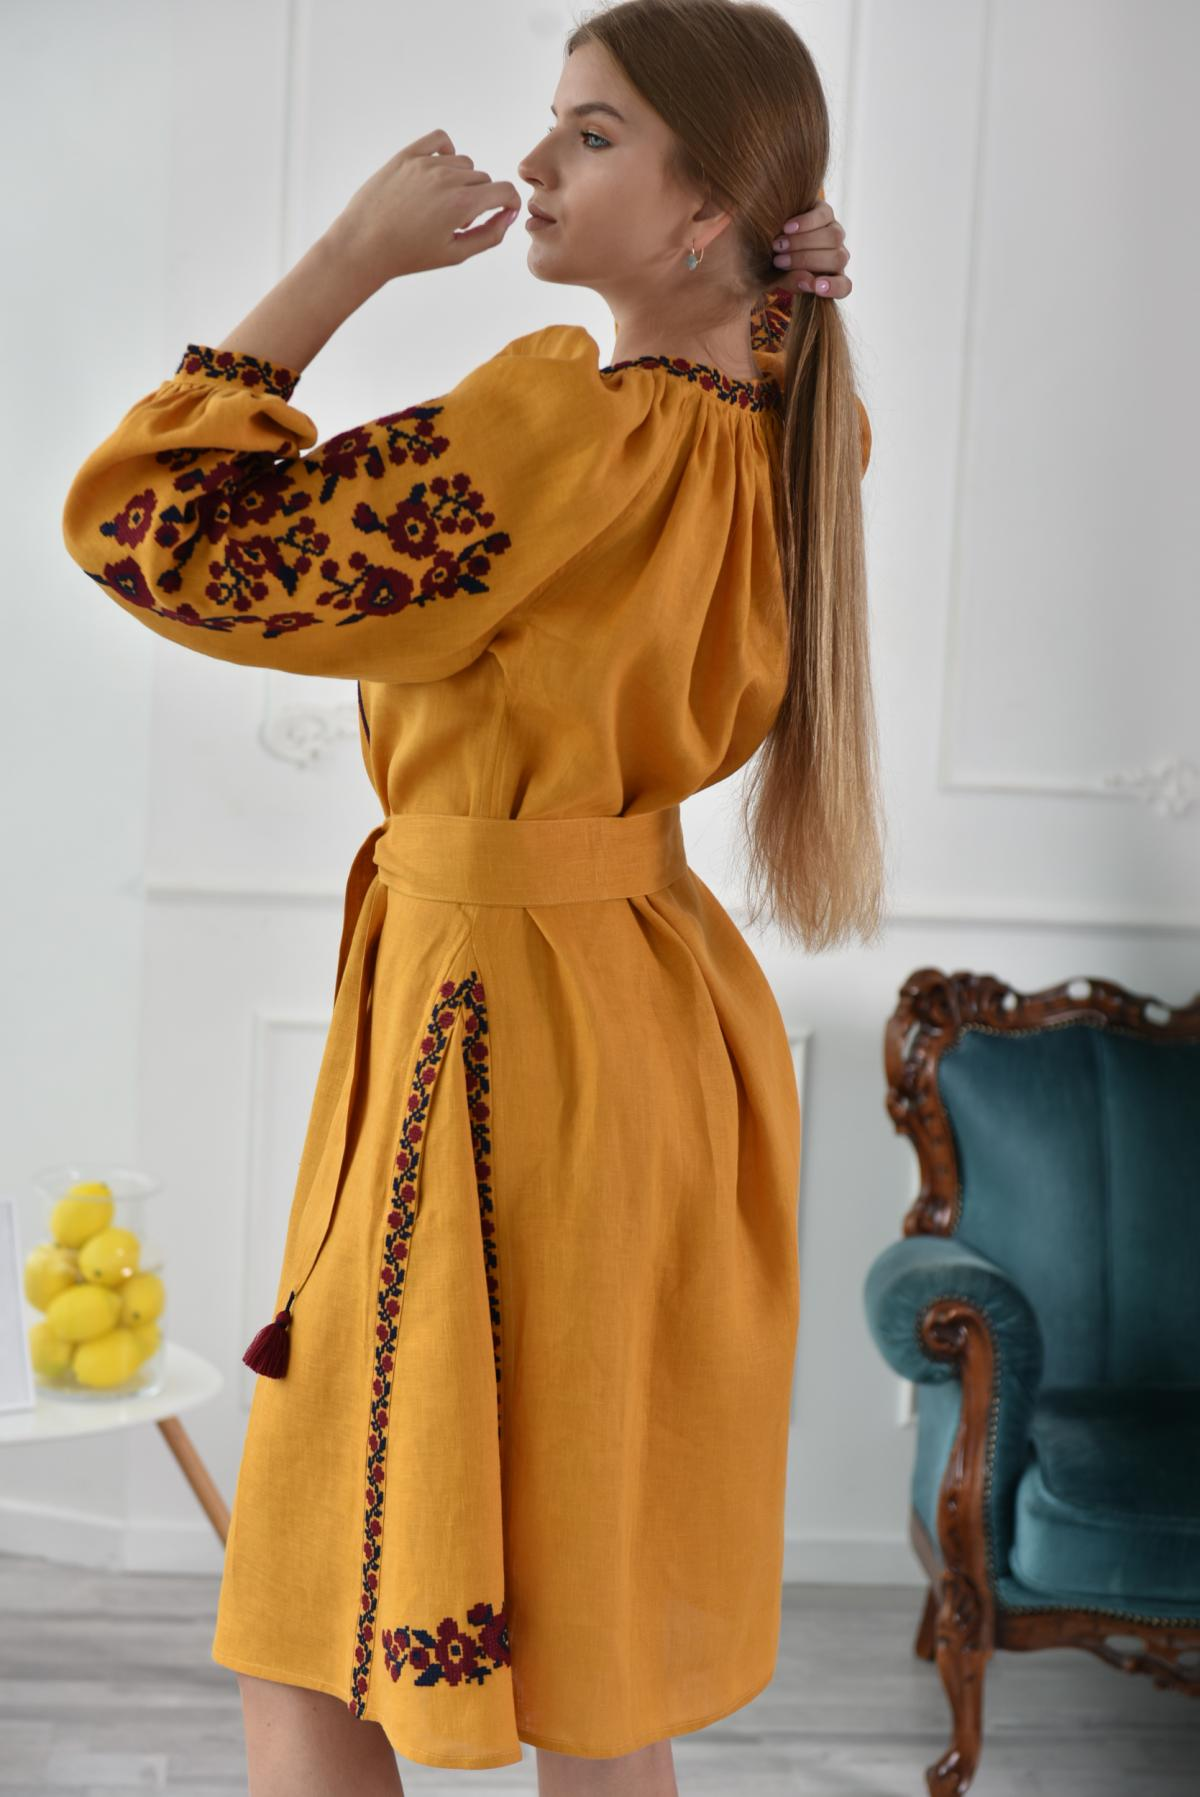 Dress-vyshyvanka of mustard color. Photo №2. | Narodnyi dim Ukraine